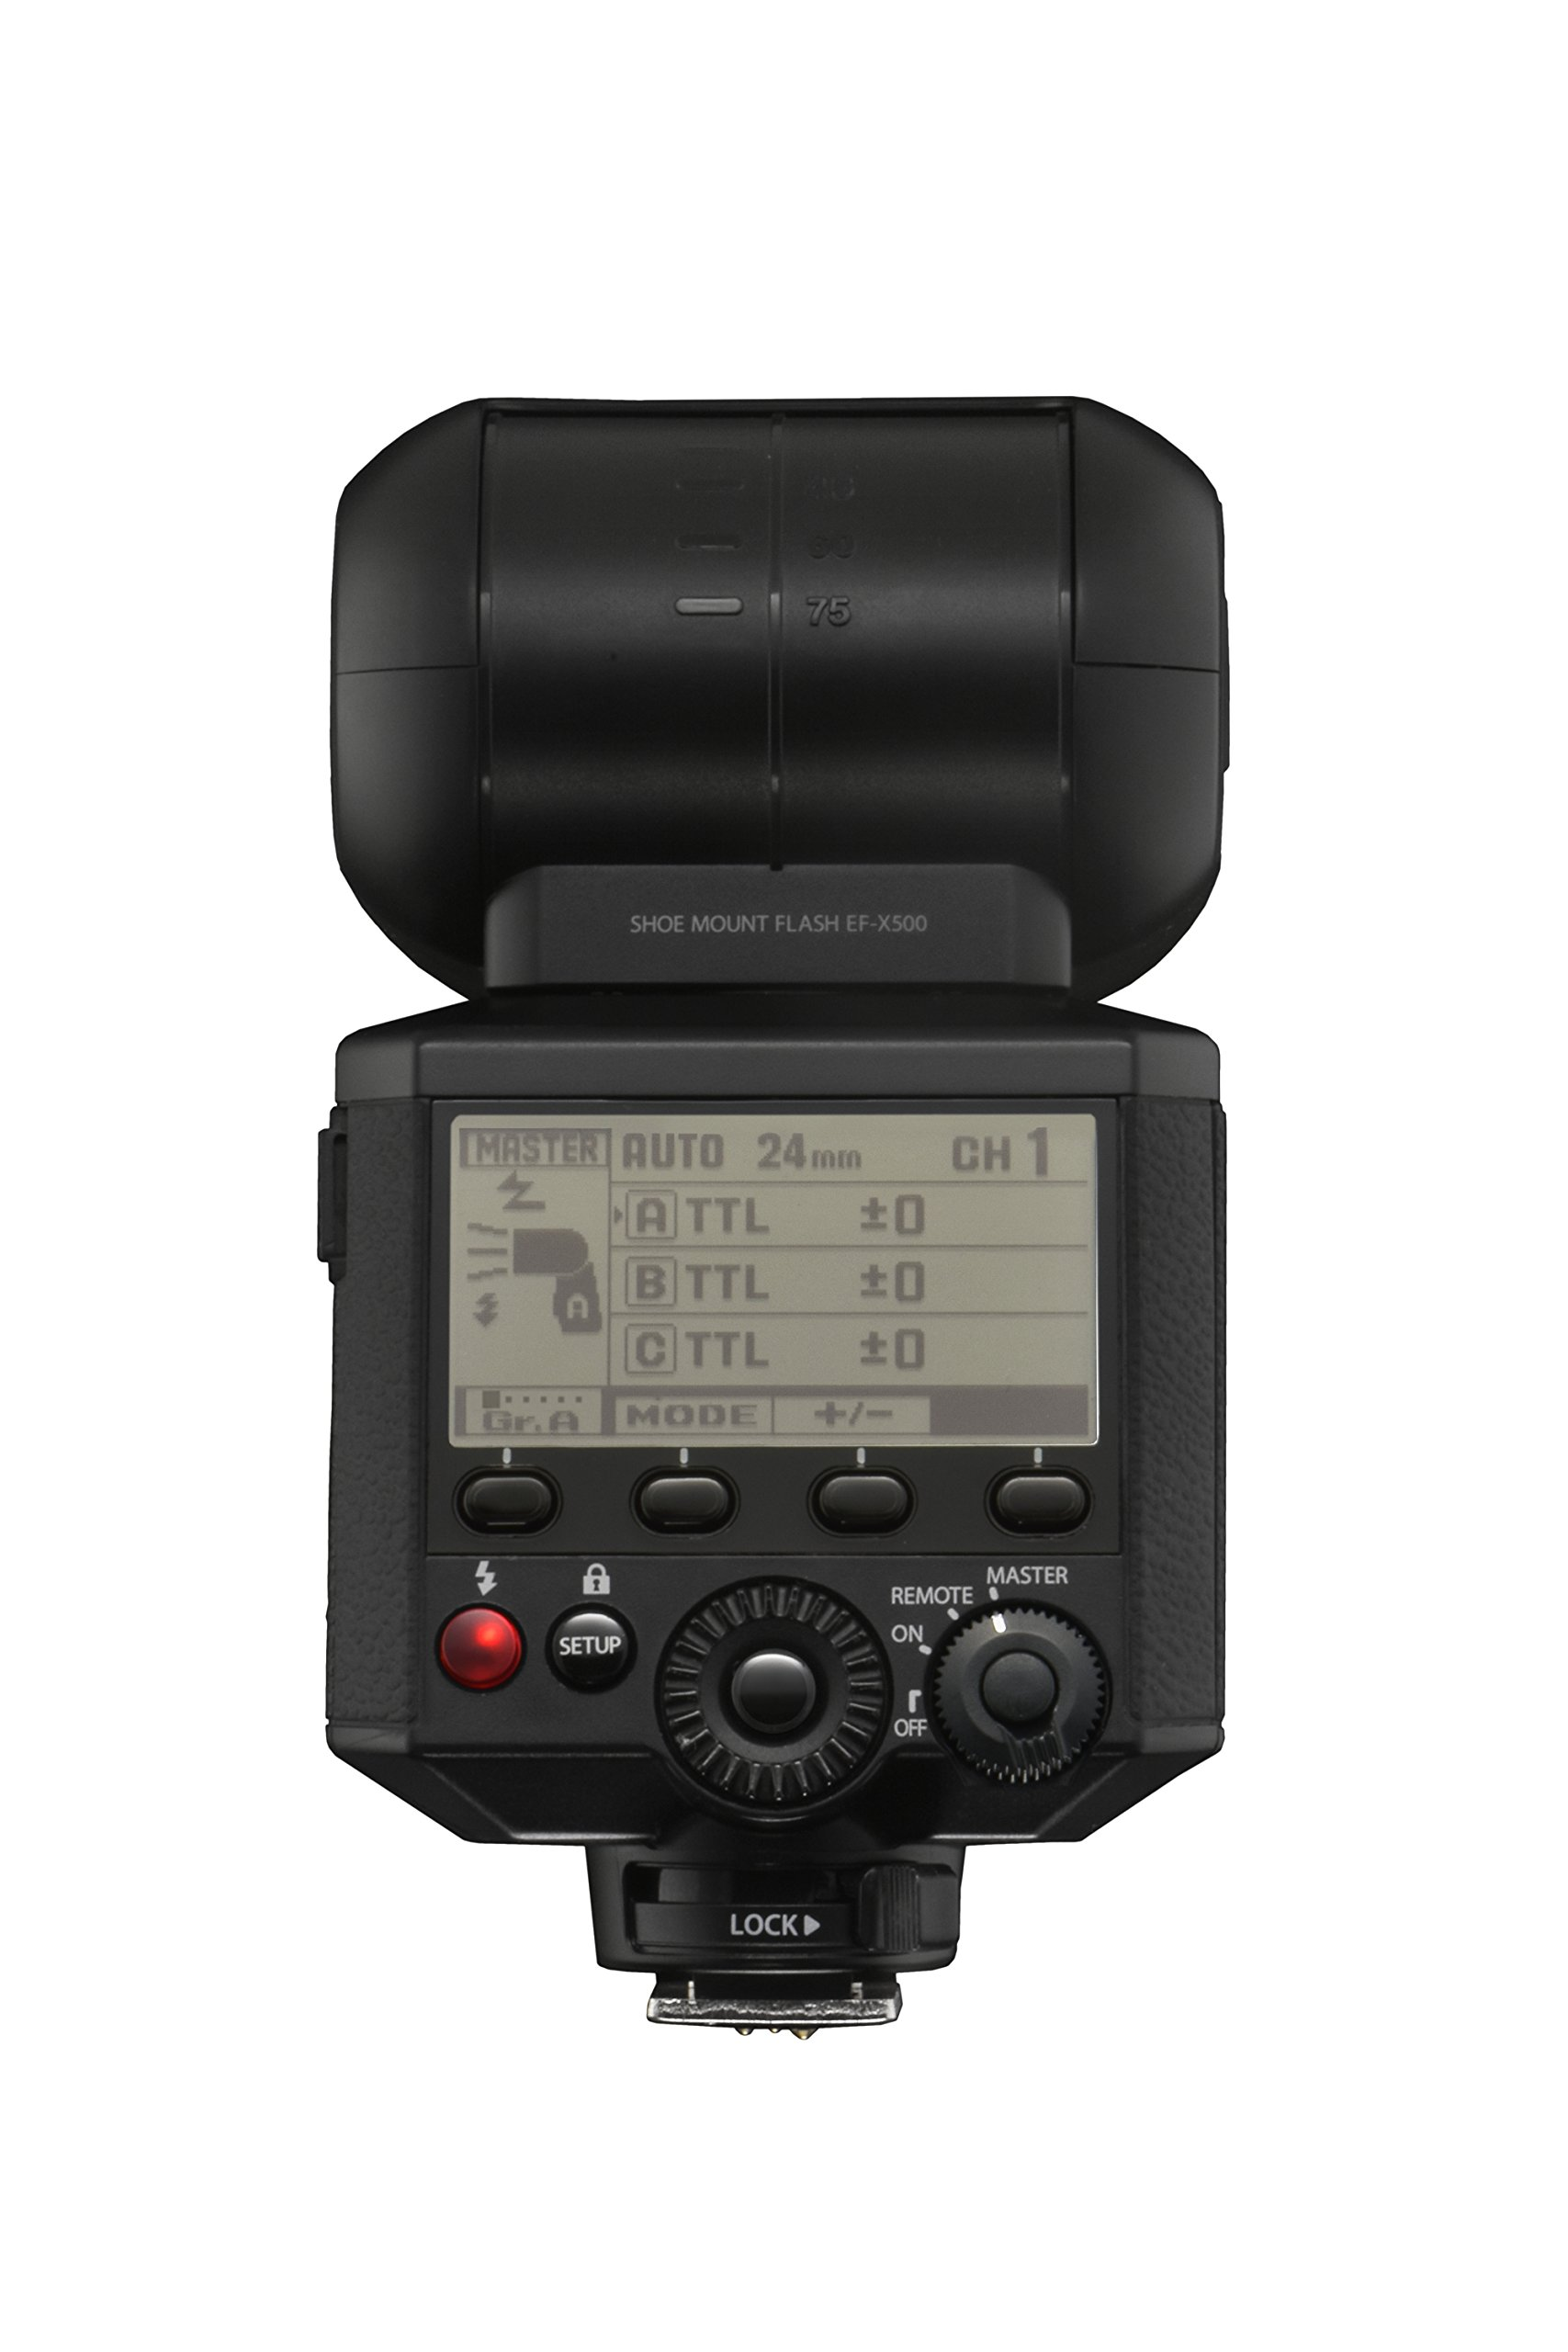 Fujifilm EF-X500 Electronic Flash by Fujifilm